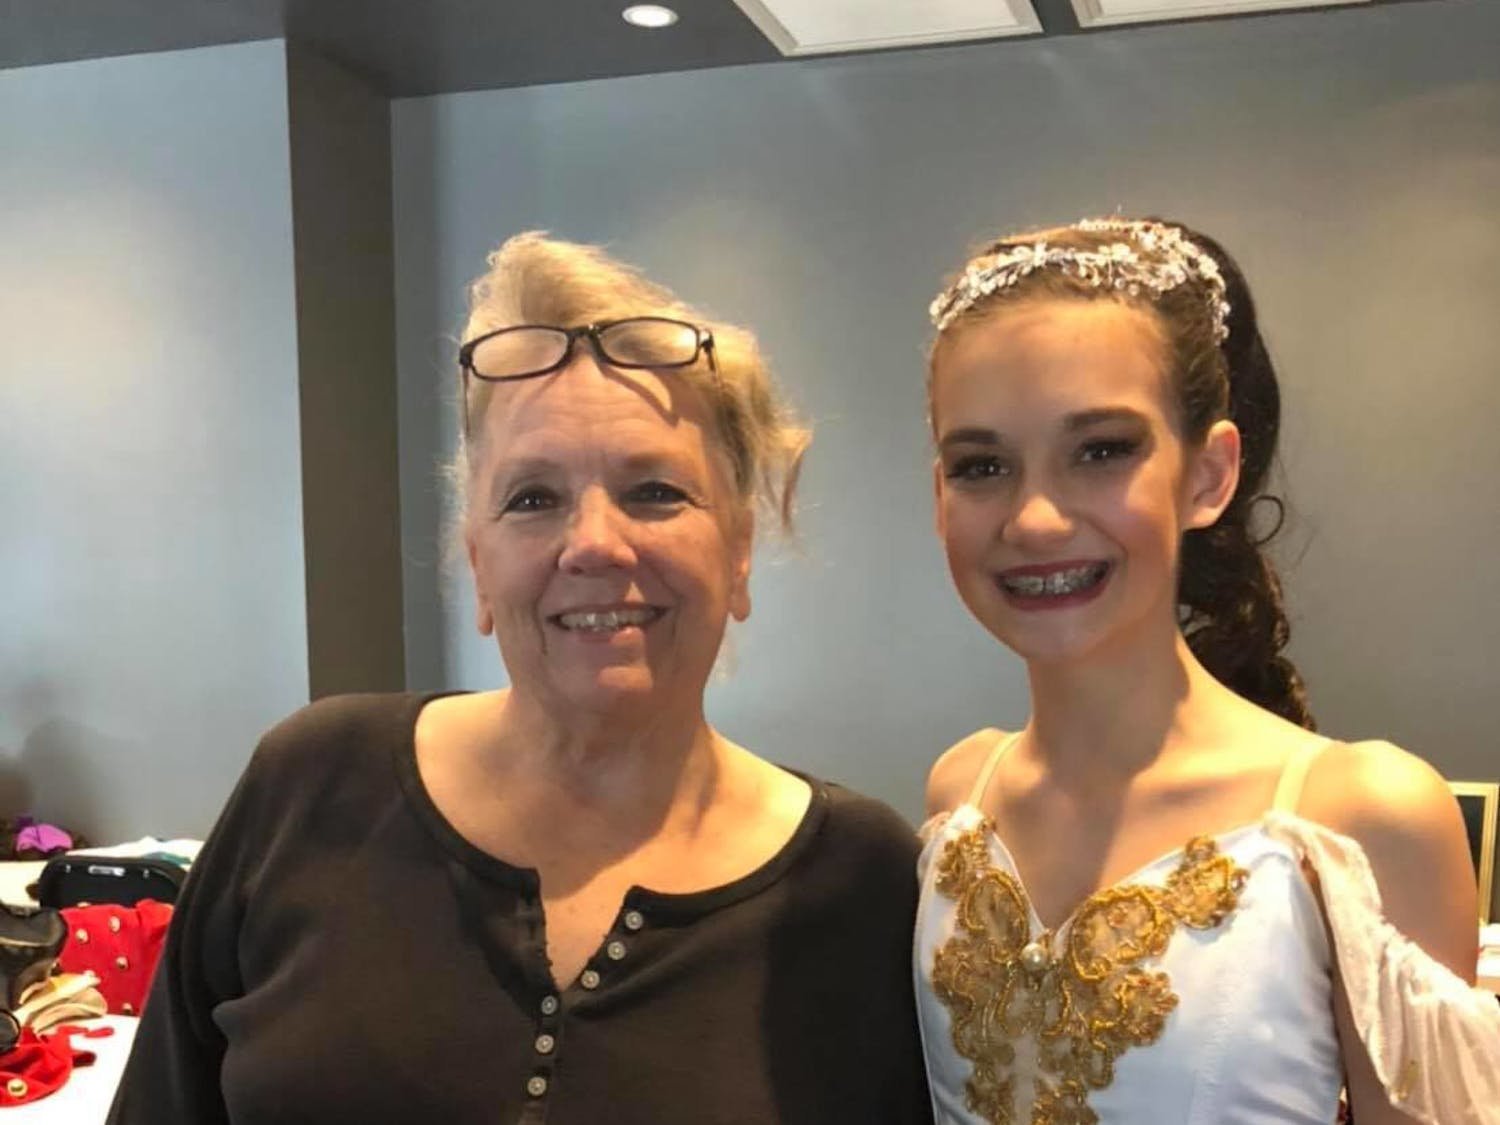 Pofahl Dance Studio co-founder, Kim Tuttle, poses with Kelly Christie's daughter, Mia, after a performance of The Nutcracker.